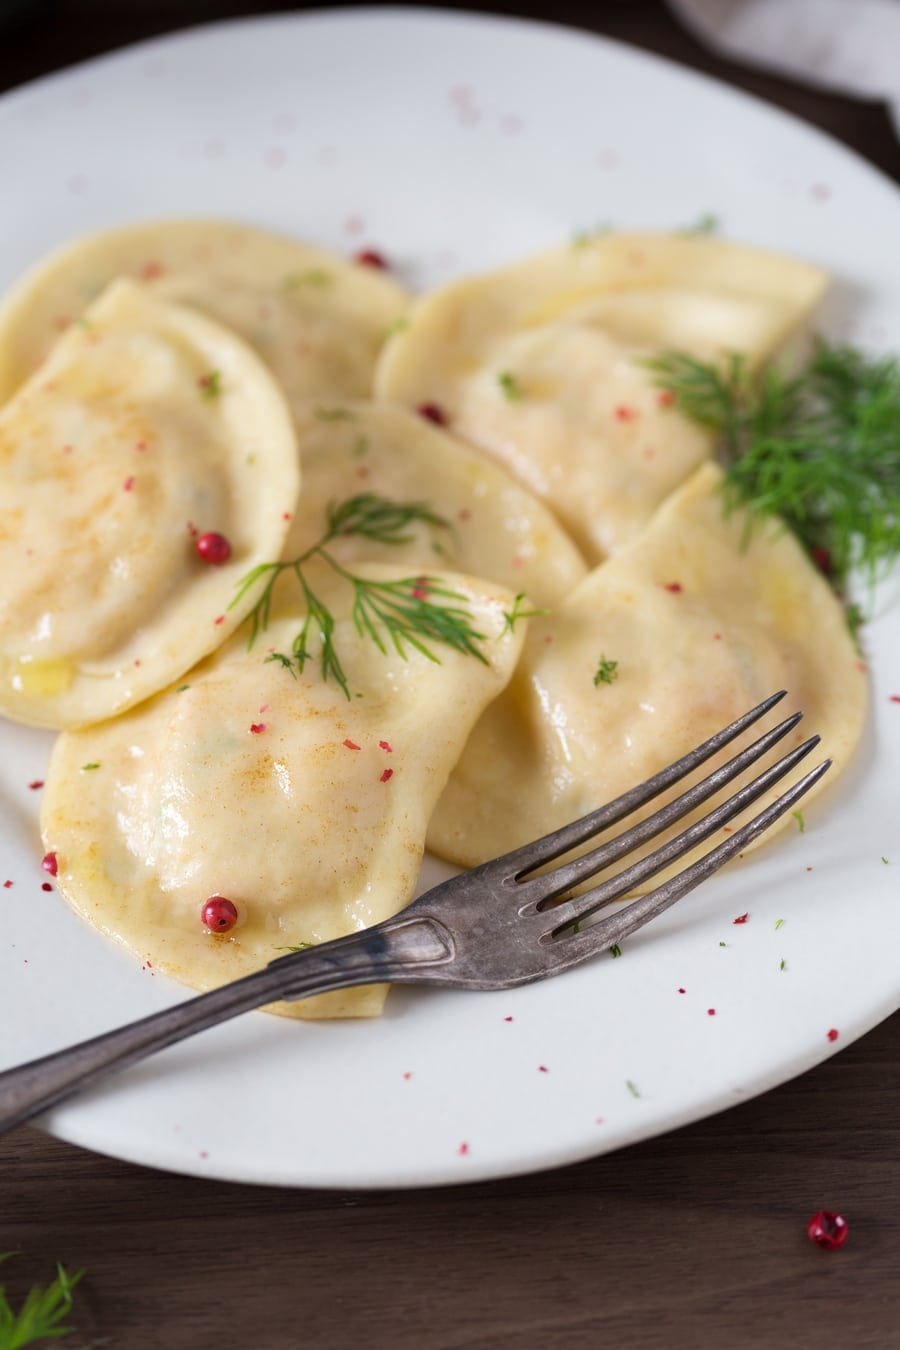 Smoked salmon ravioli with dill and pink peppercorns on a white plate.